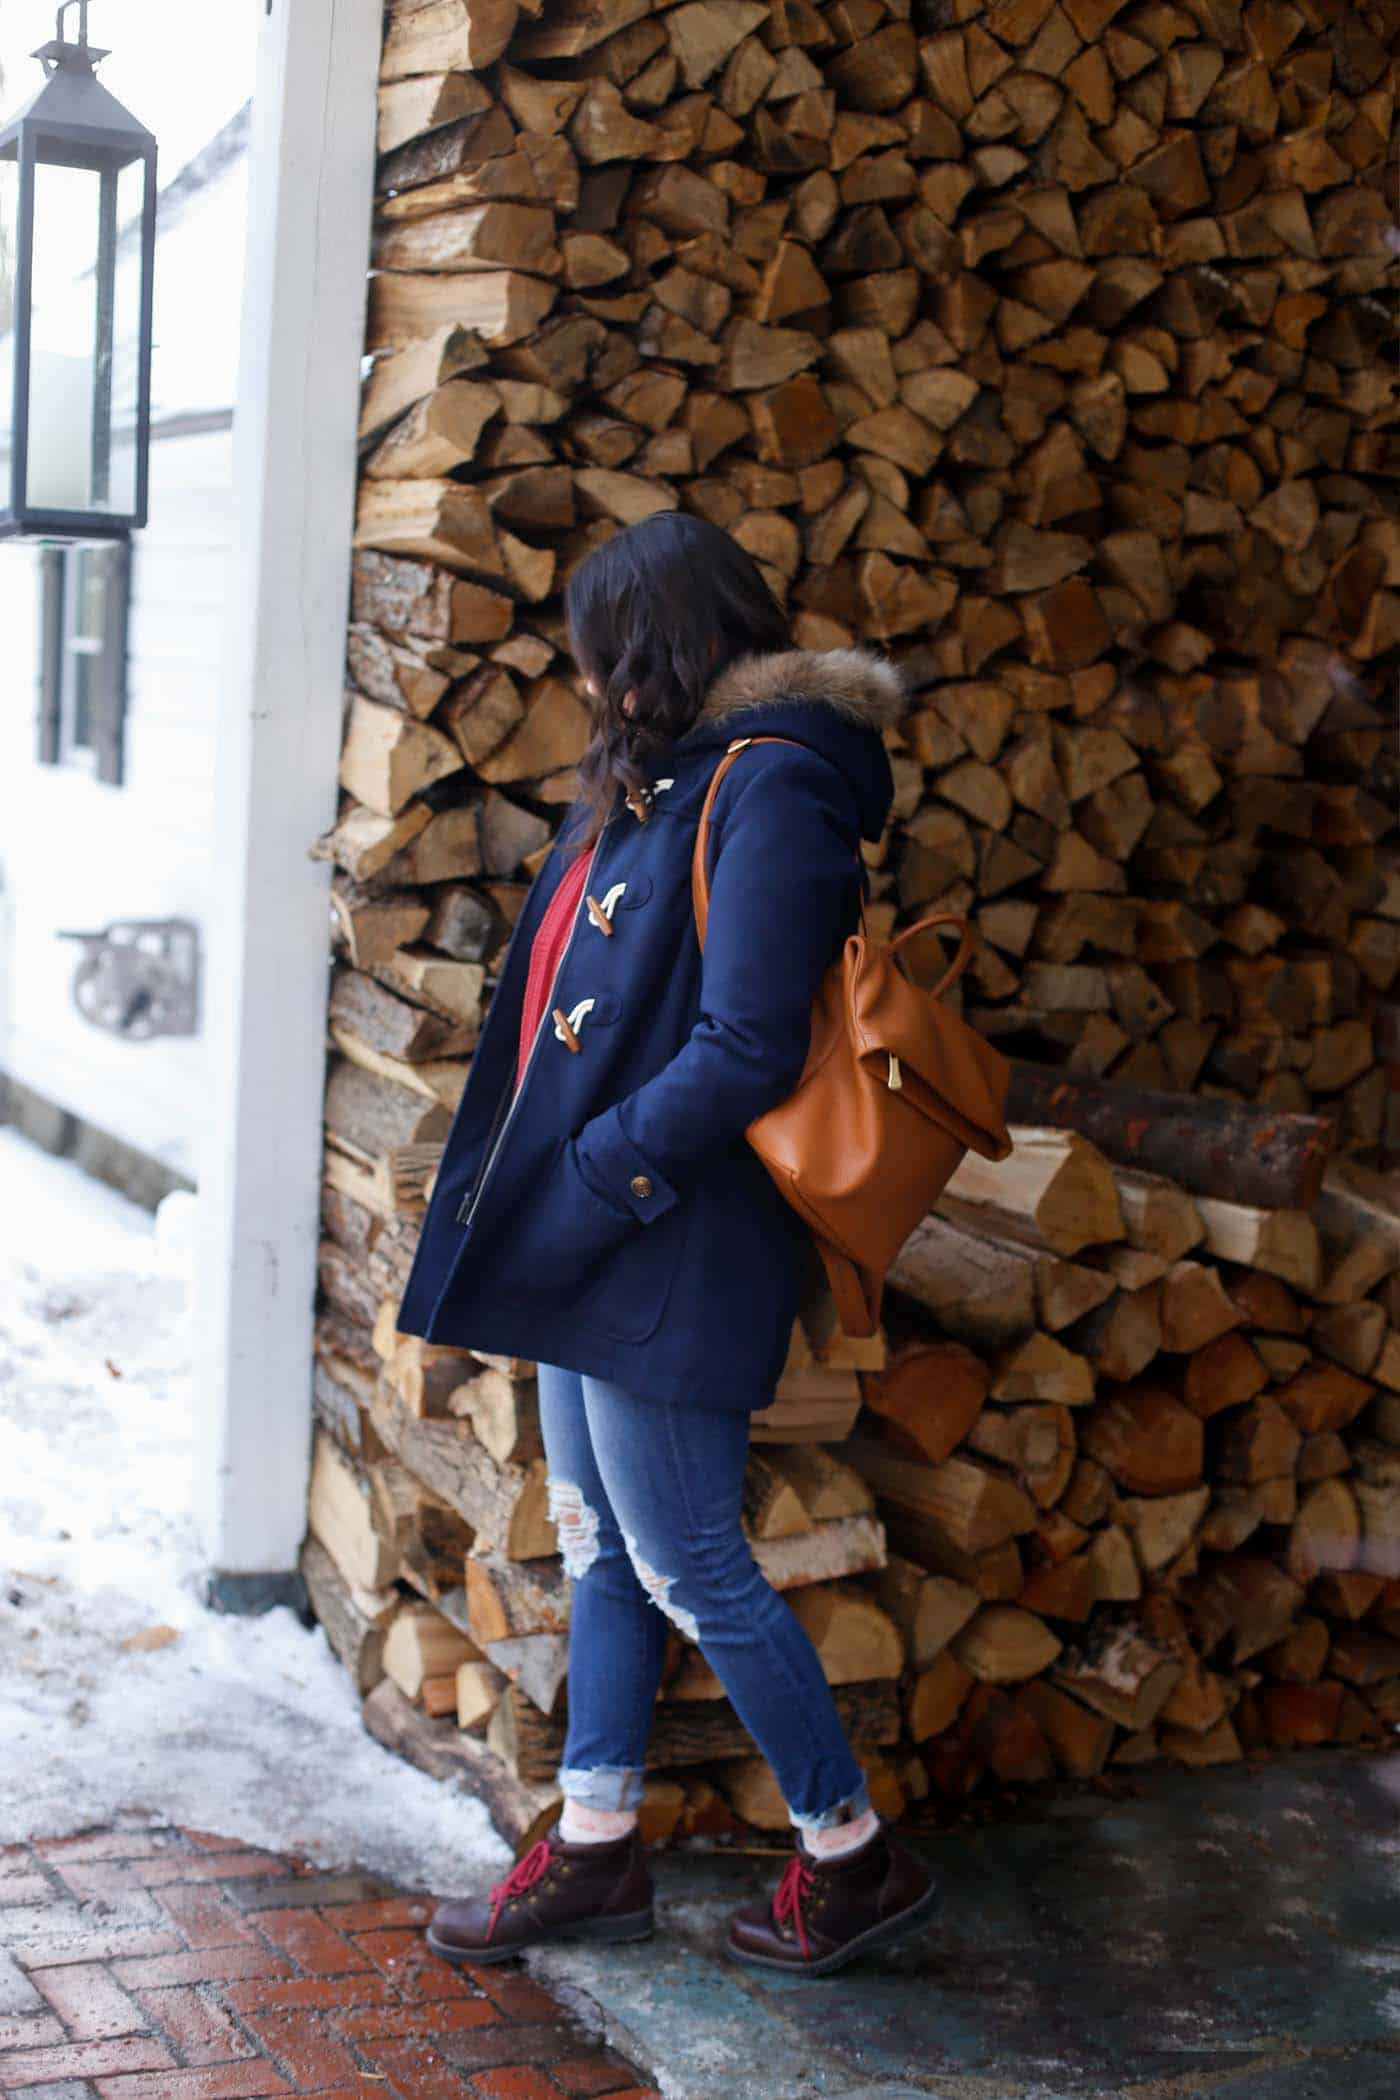 winter wonderland, things to wear in the winter, cozy outfits, snow, Vermont - My Style Vita @mystylevita